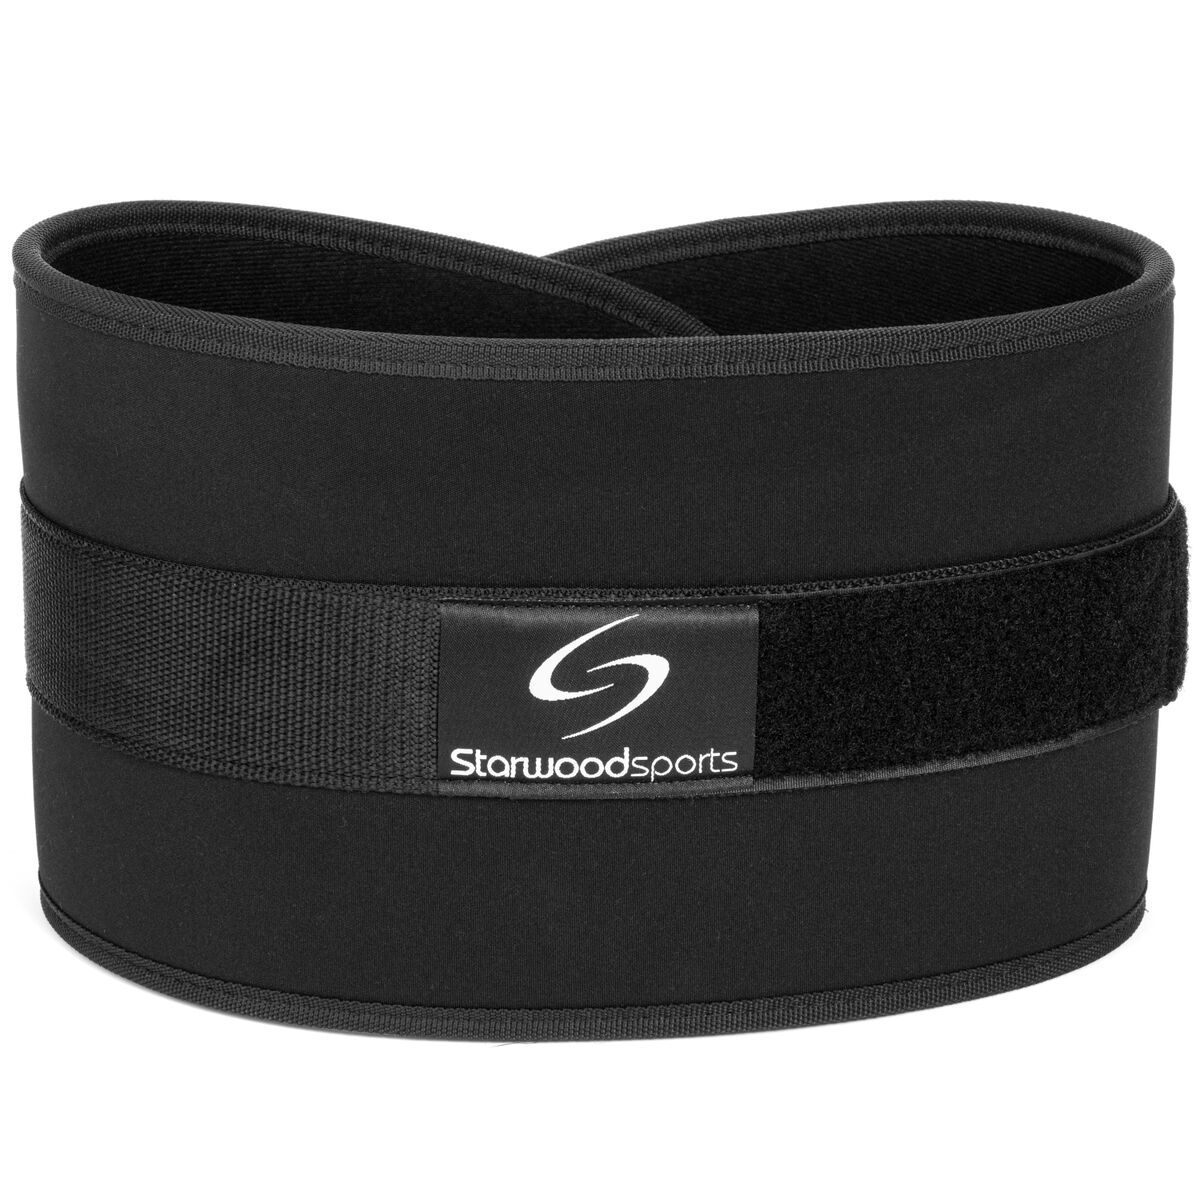 for Weightlifting Starwood Sports Wrist Wraps and Lifting Straps Set and –